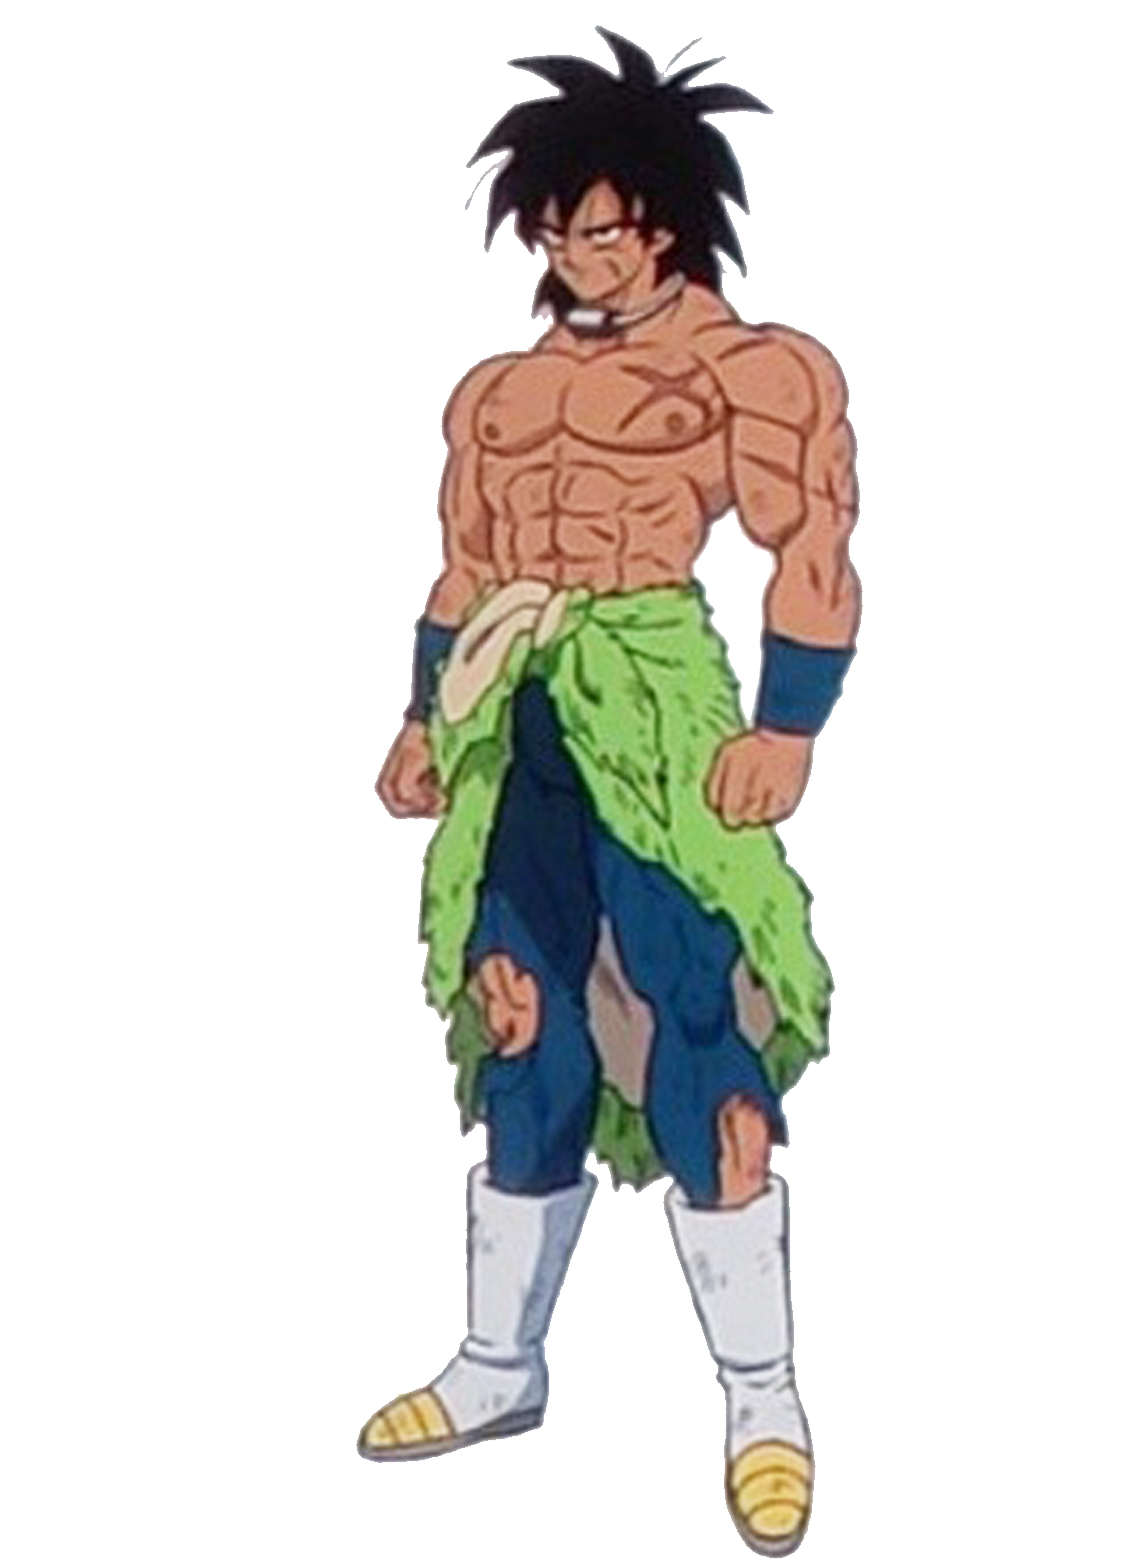 Rappers drawing dbz. Broly db franchise dragon